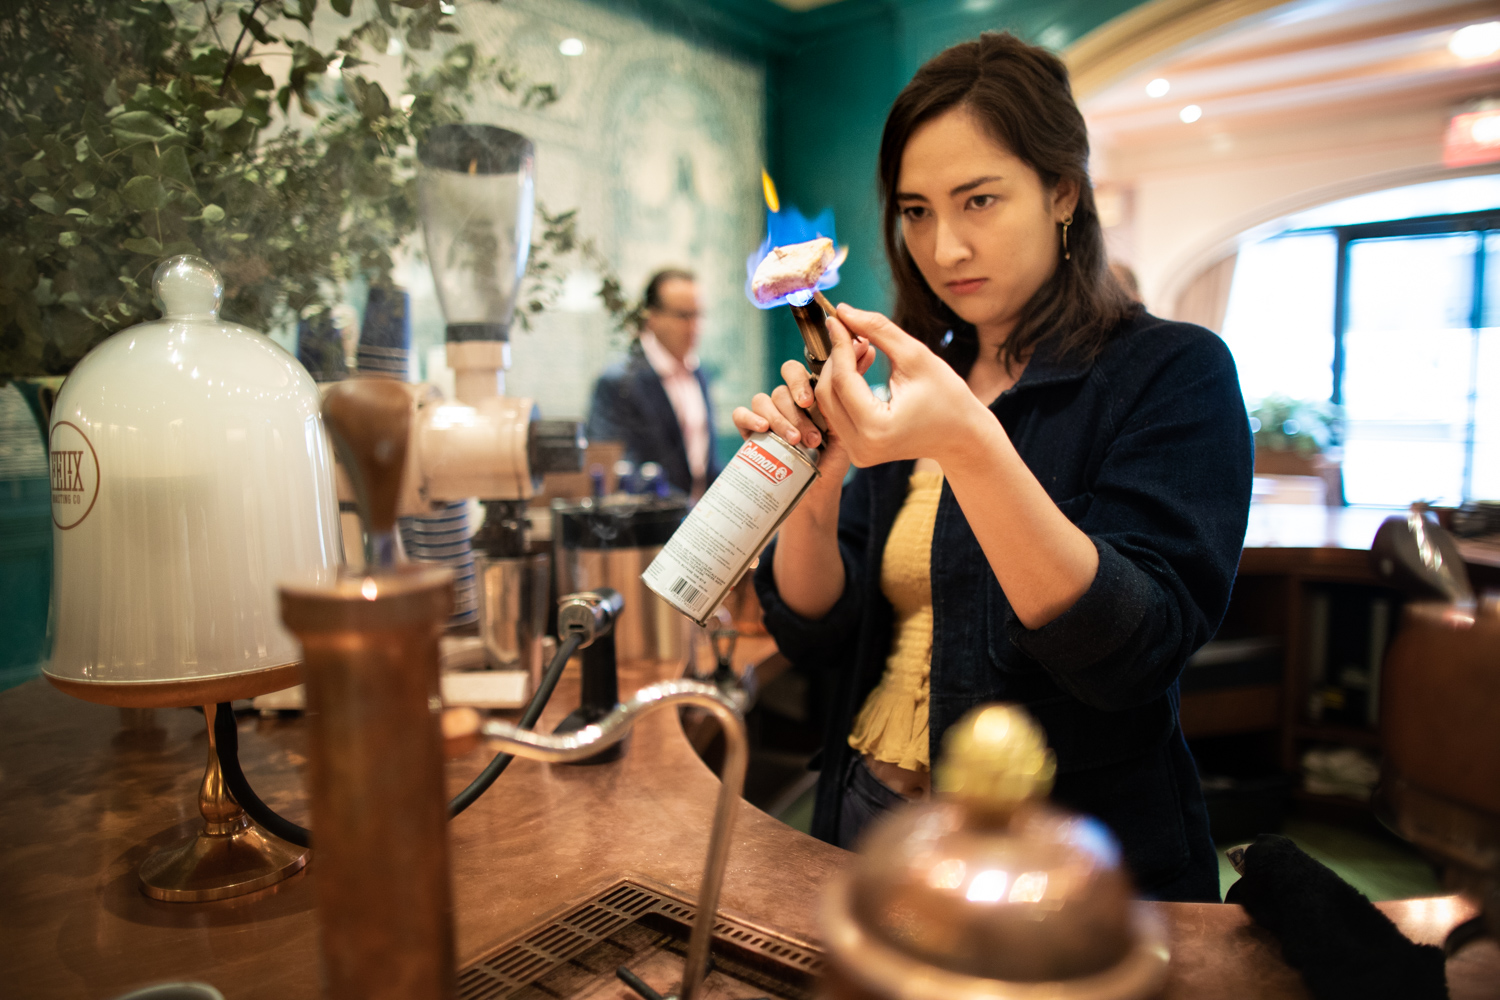 Step 4: Allow the smoke to continue permeating the latte/espresso. Torch the marshmallow to produce a toasted marshmallow. Behind the counter with a fierce look of concentration:  Isabelle , barista at Felix Roasting Co.